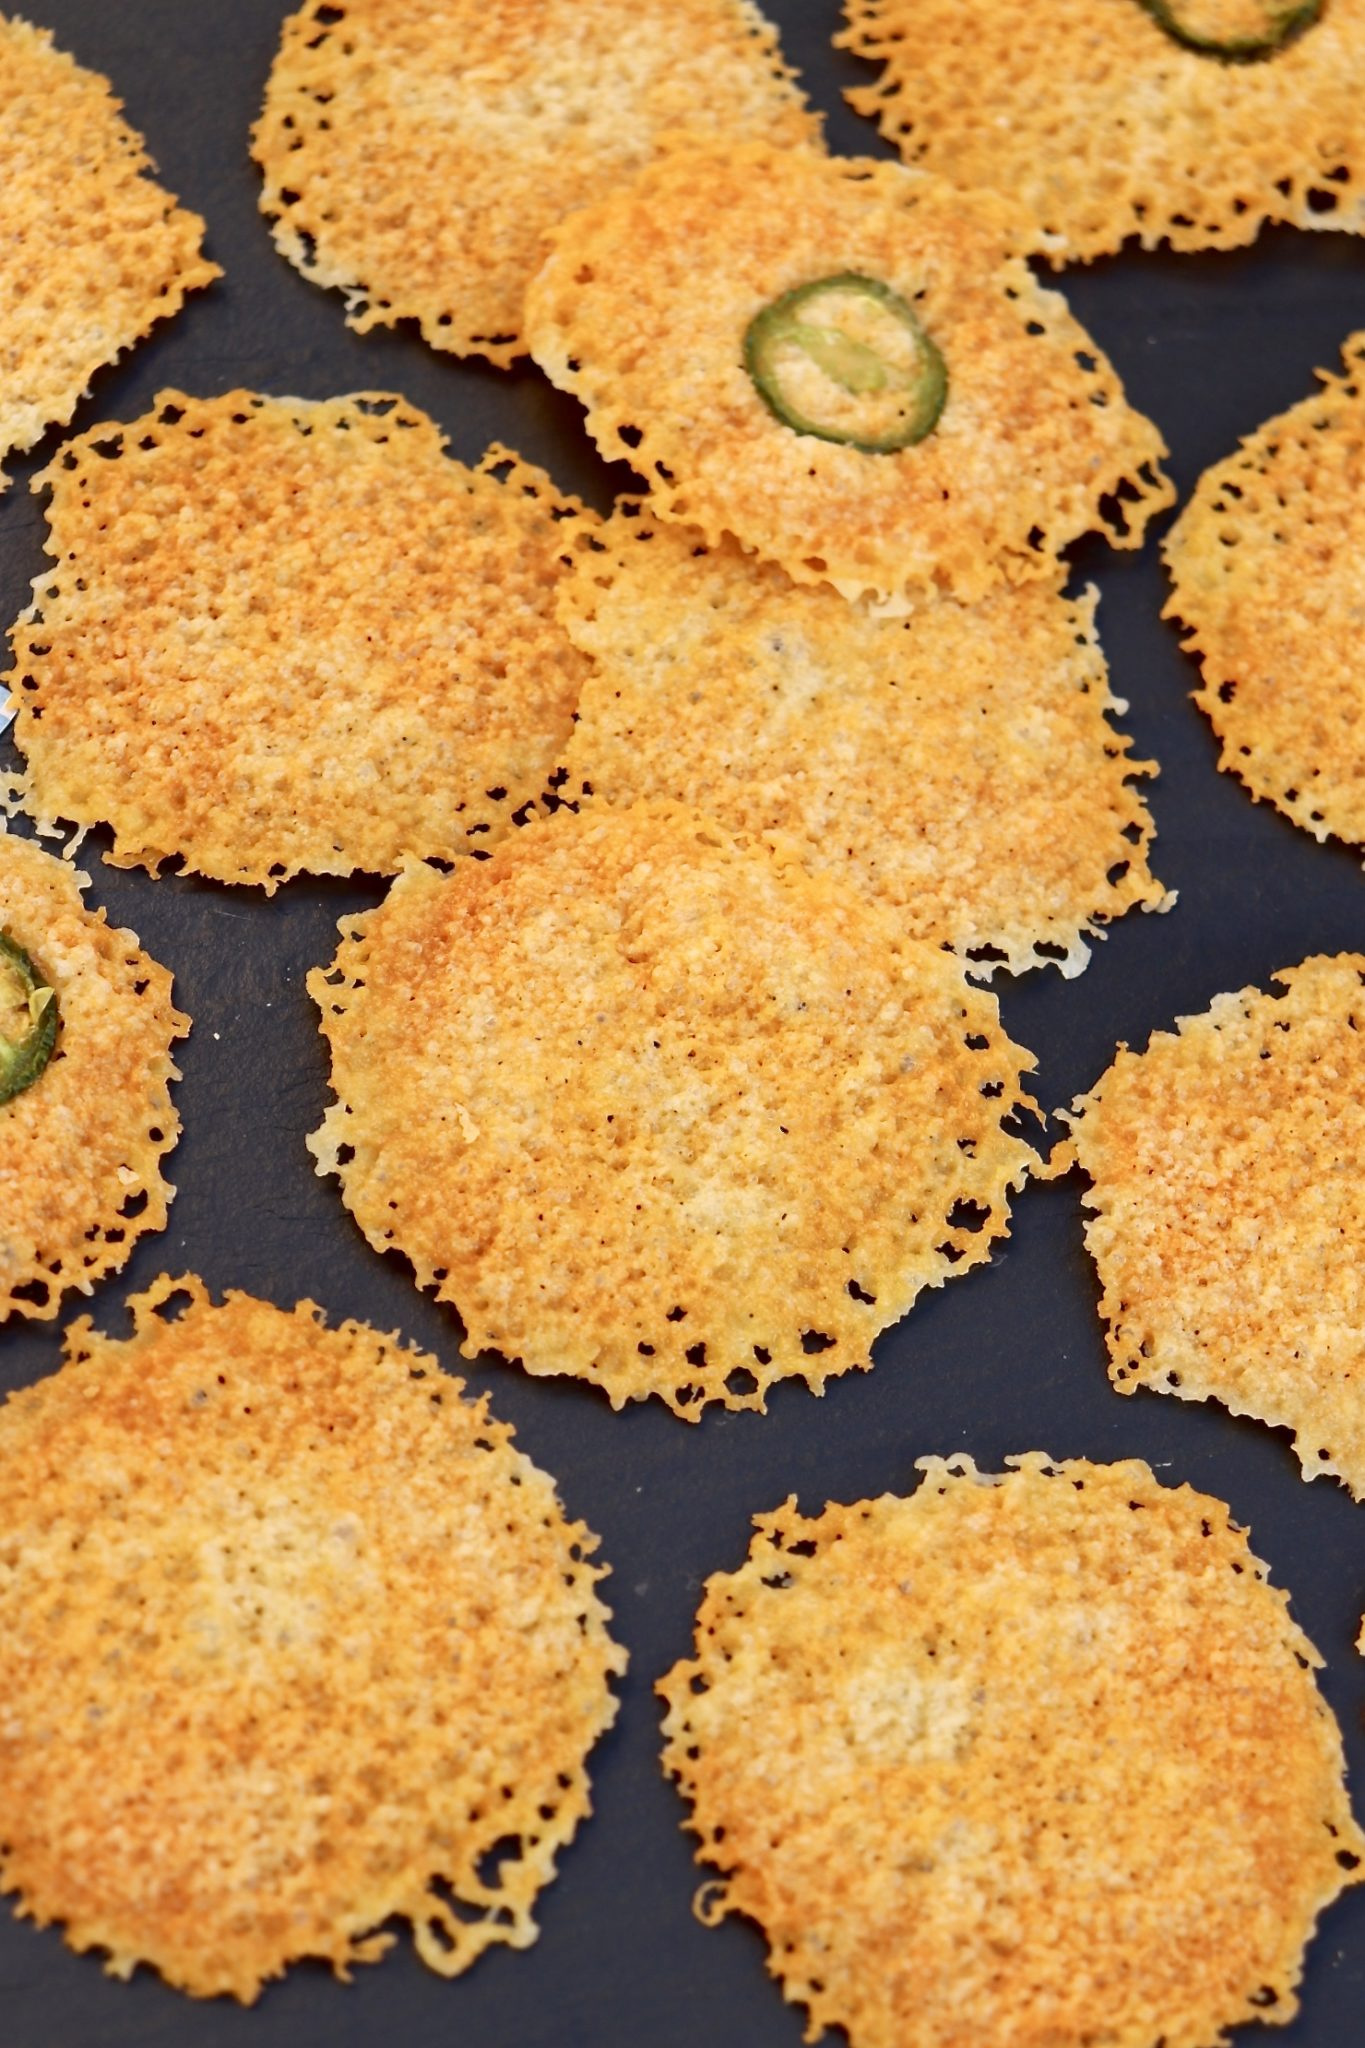 Low-carb cheese crisps require only one ingredient (jalapeño slices are optional) and cook in 2 short minutes – and believe it or not the microwave produces better results than the oven. Perfect with a glass of wine or as a flavorful option to a crouton.